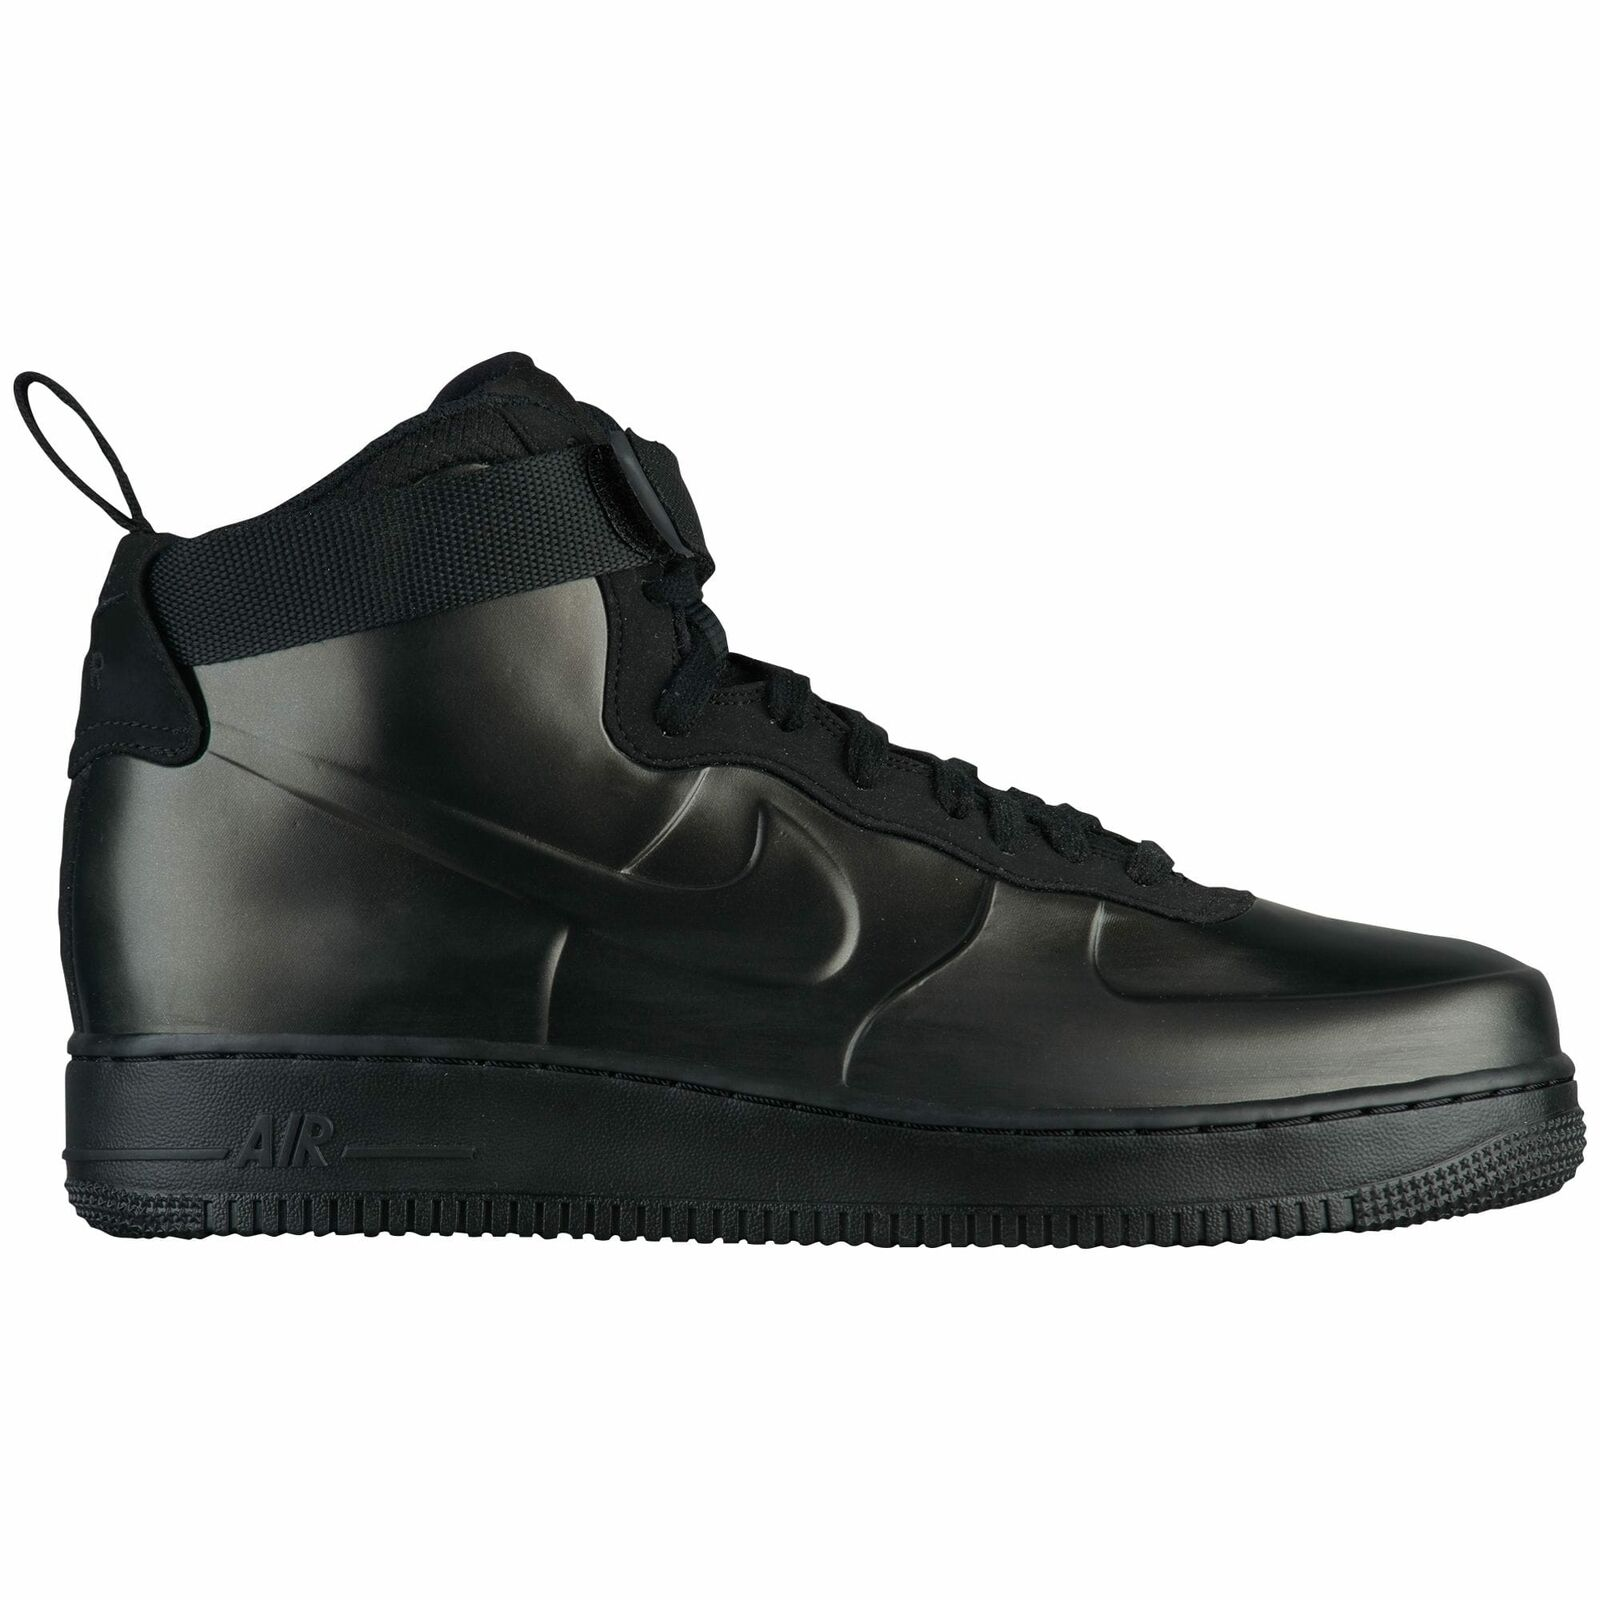 Nike Air Force 1 Foamposite Men's Black Black Black H6771001